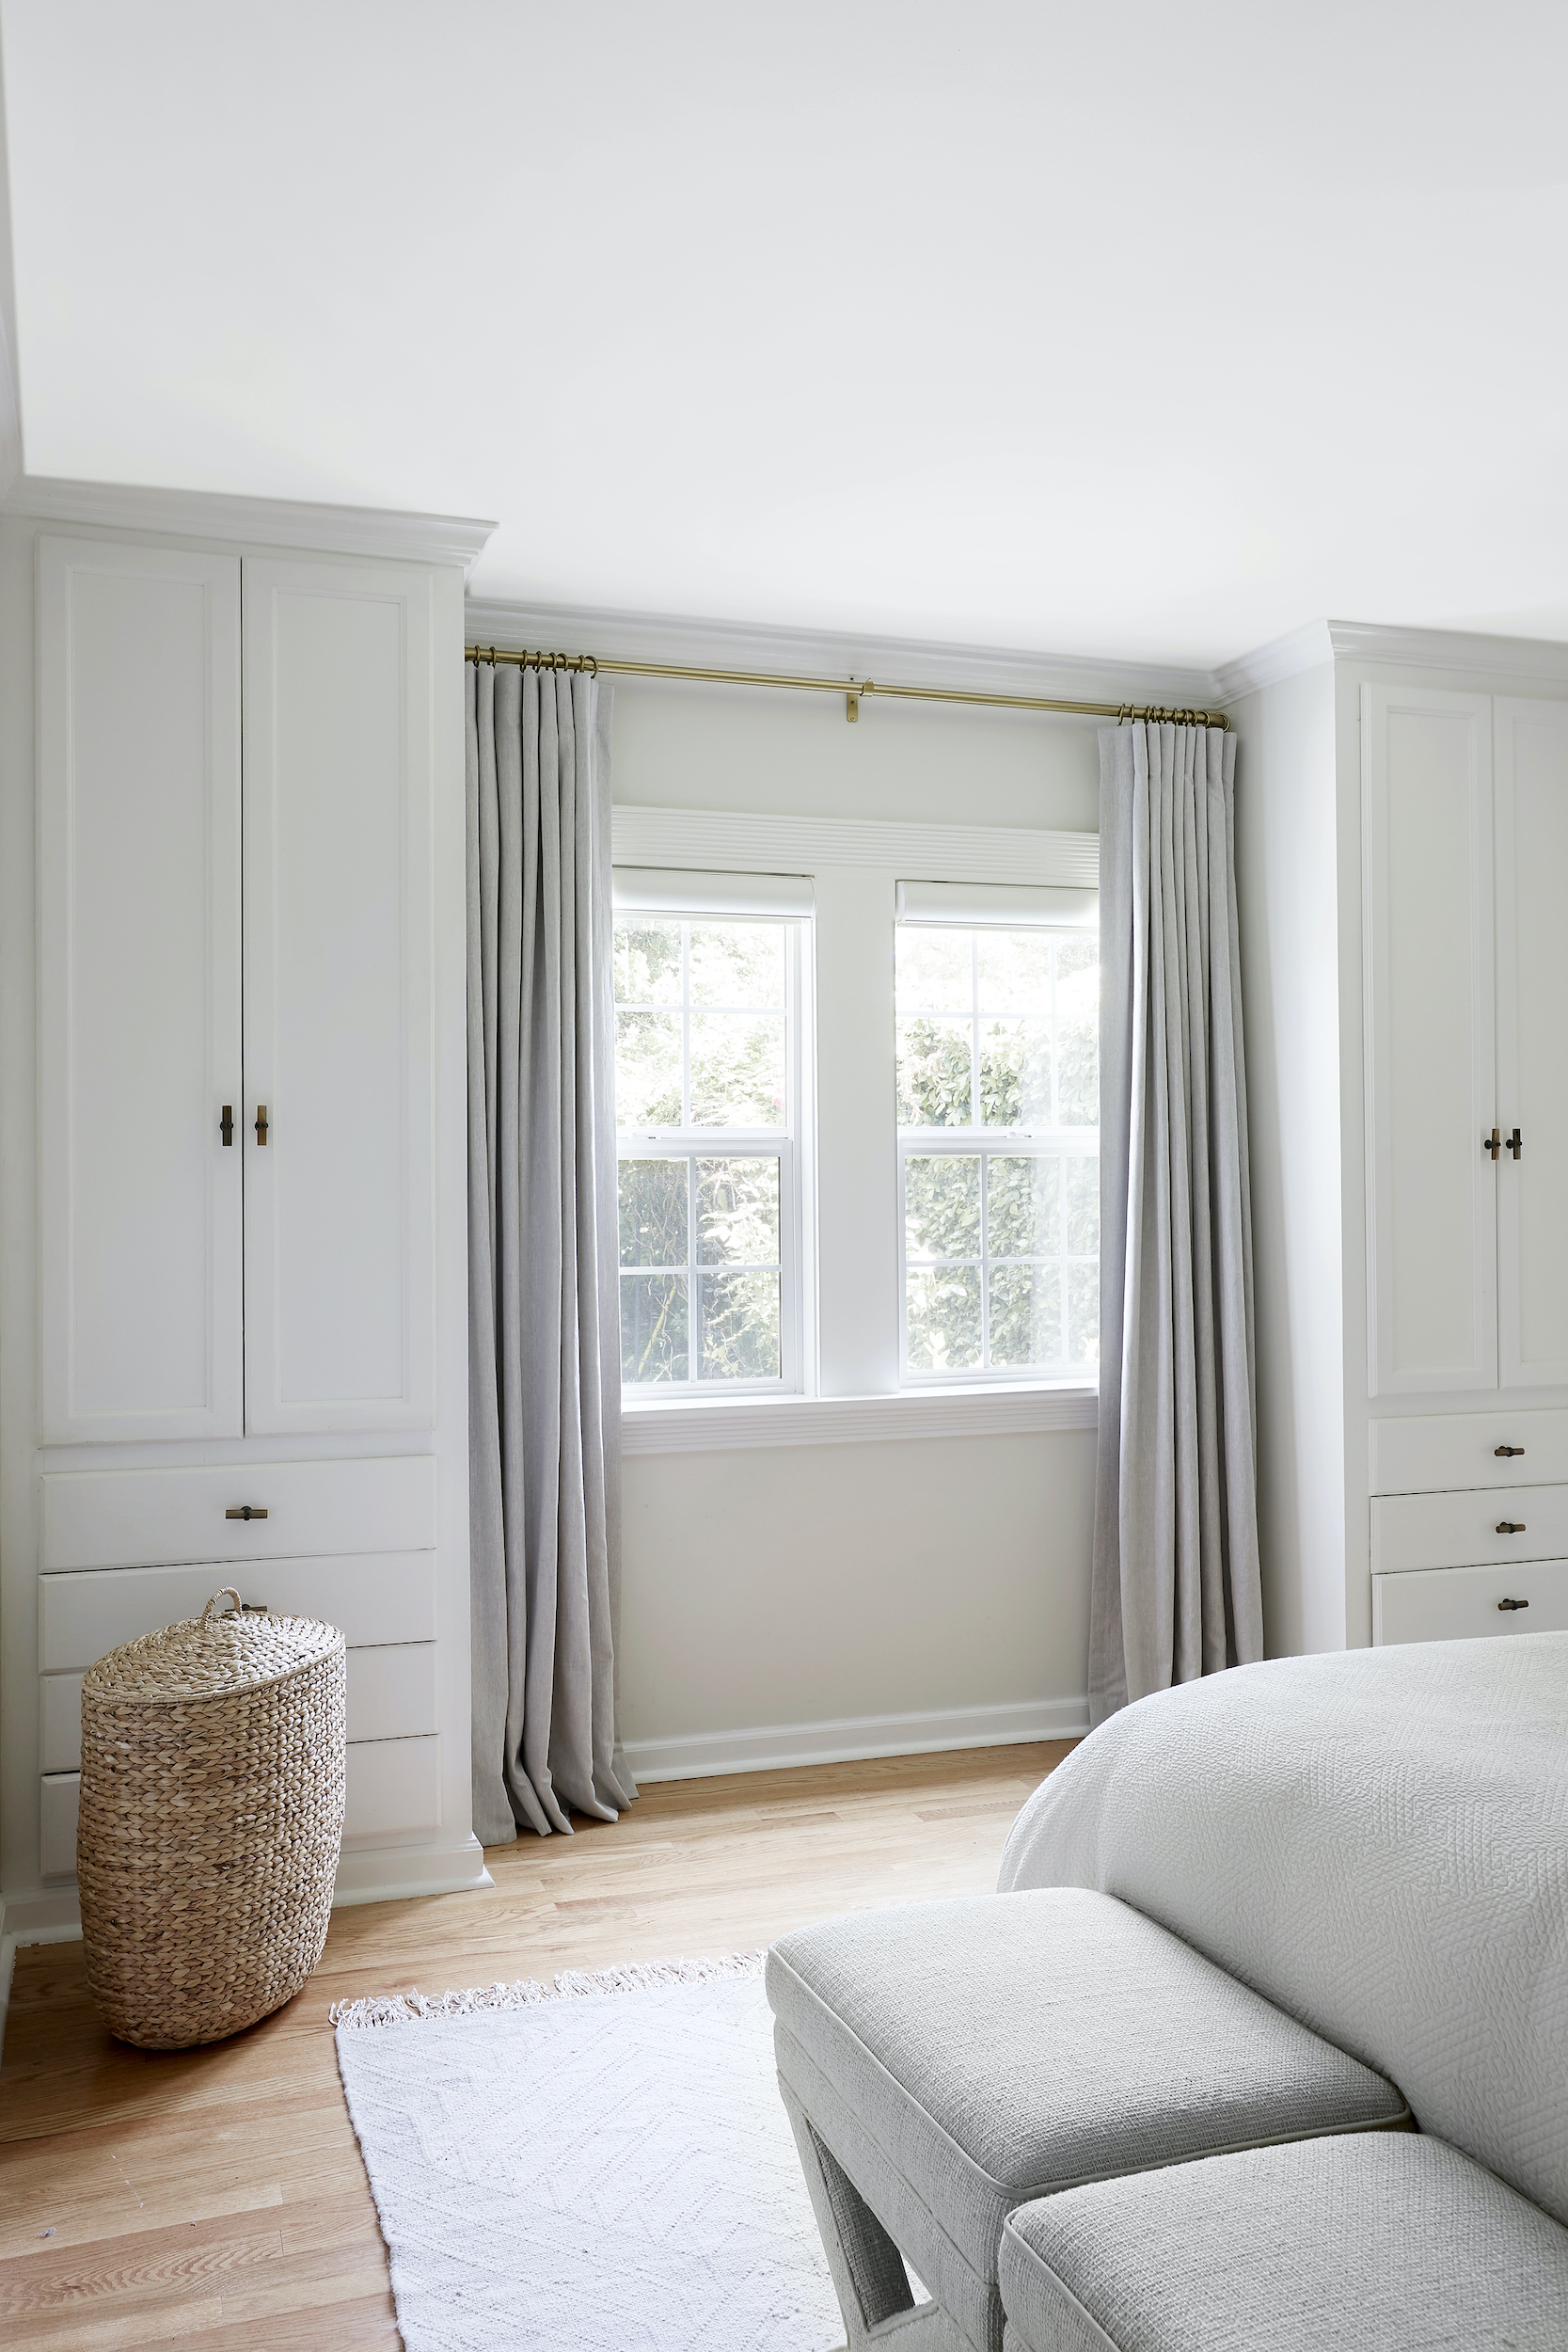 Everhem linen drapery in neutral gray tone hangs open in modern master bedroom